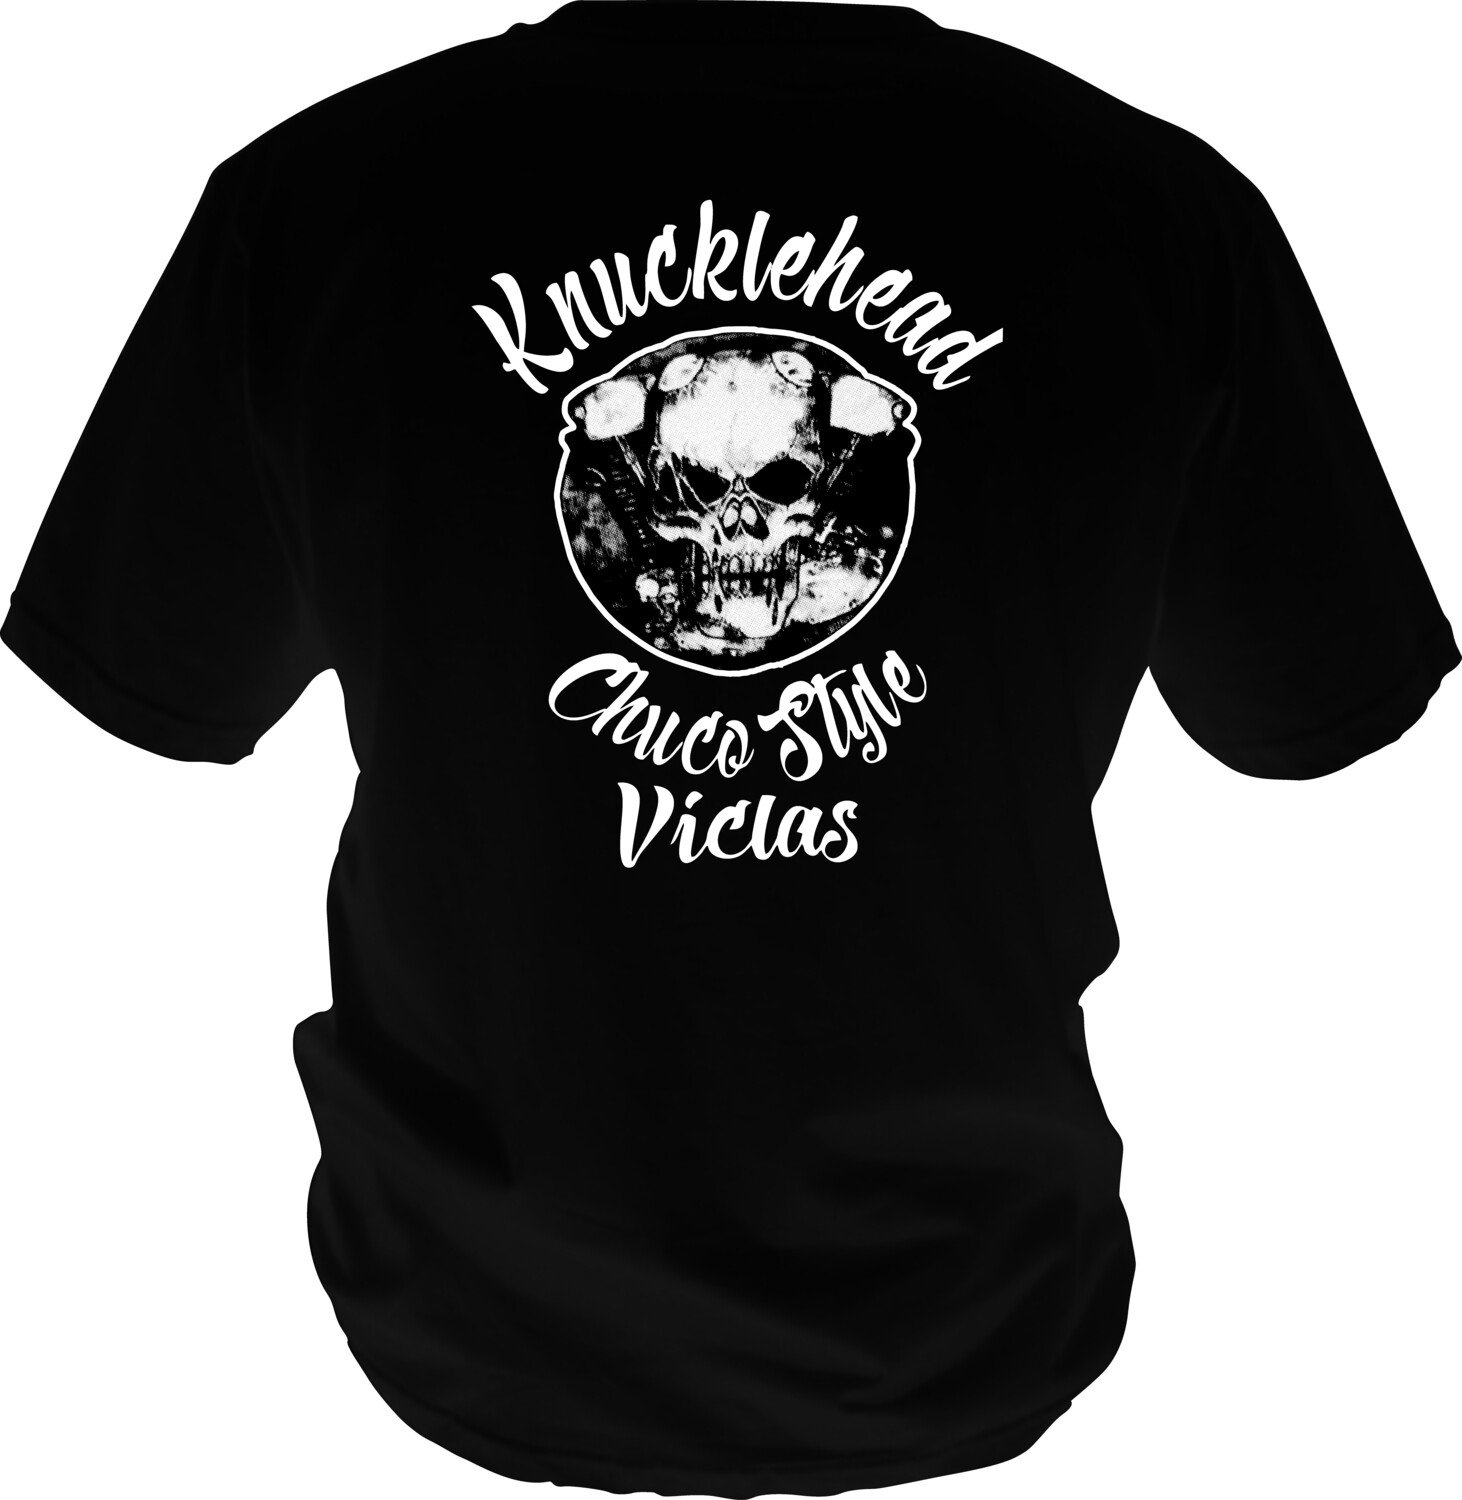 Knuckle Head Motorcycle shop T